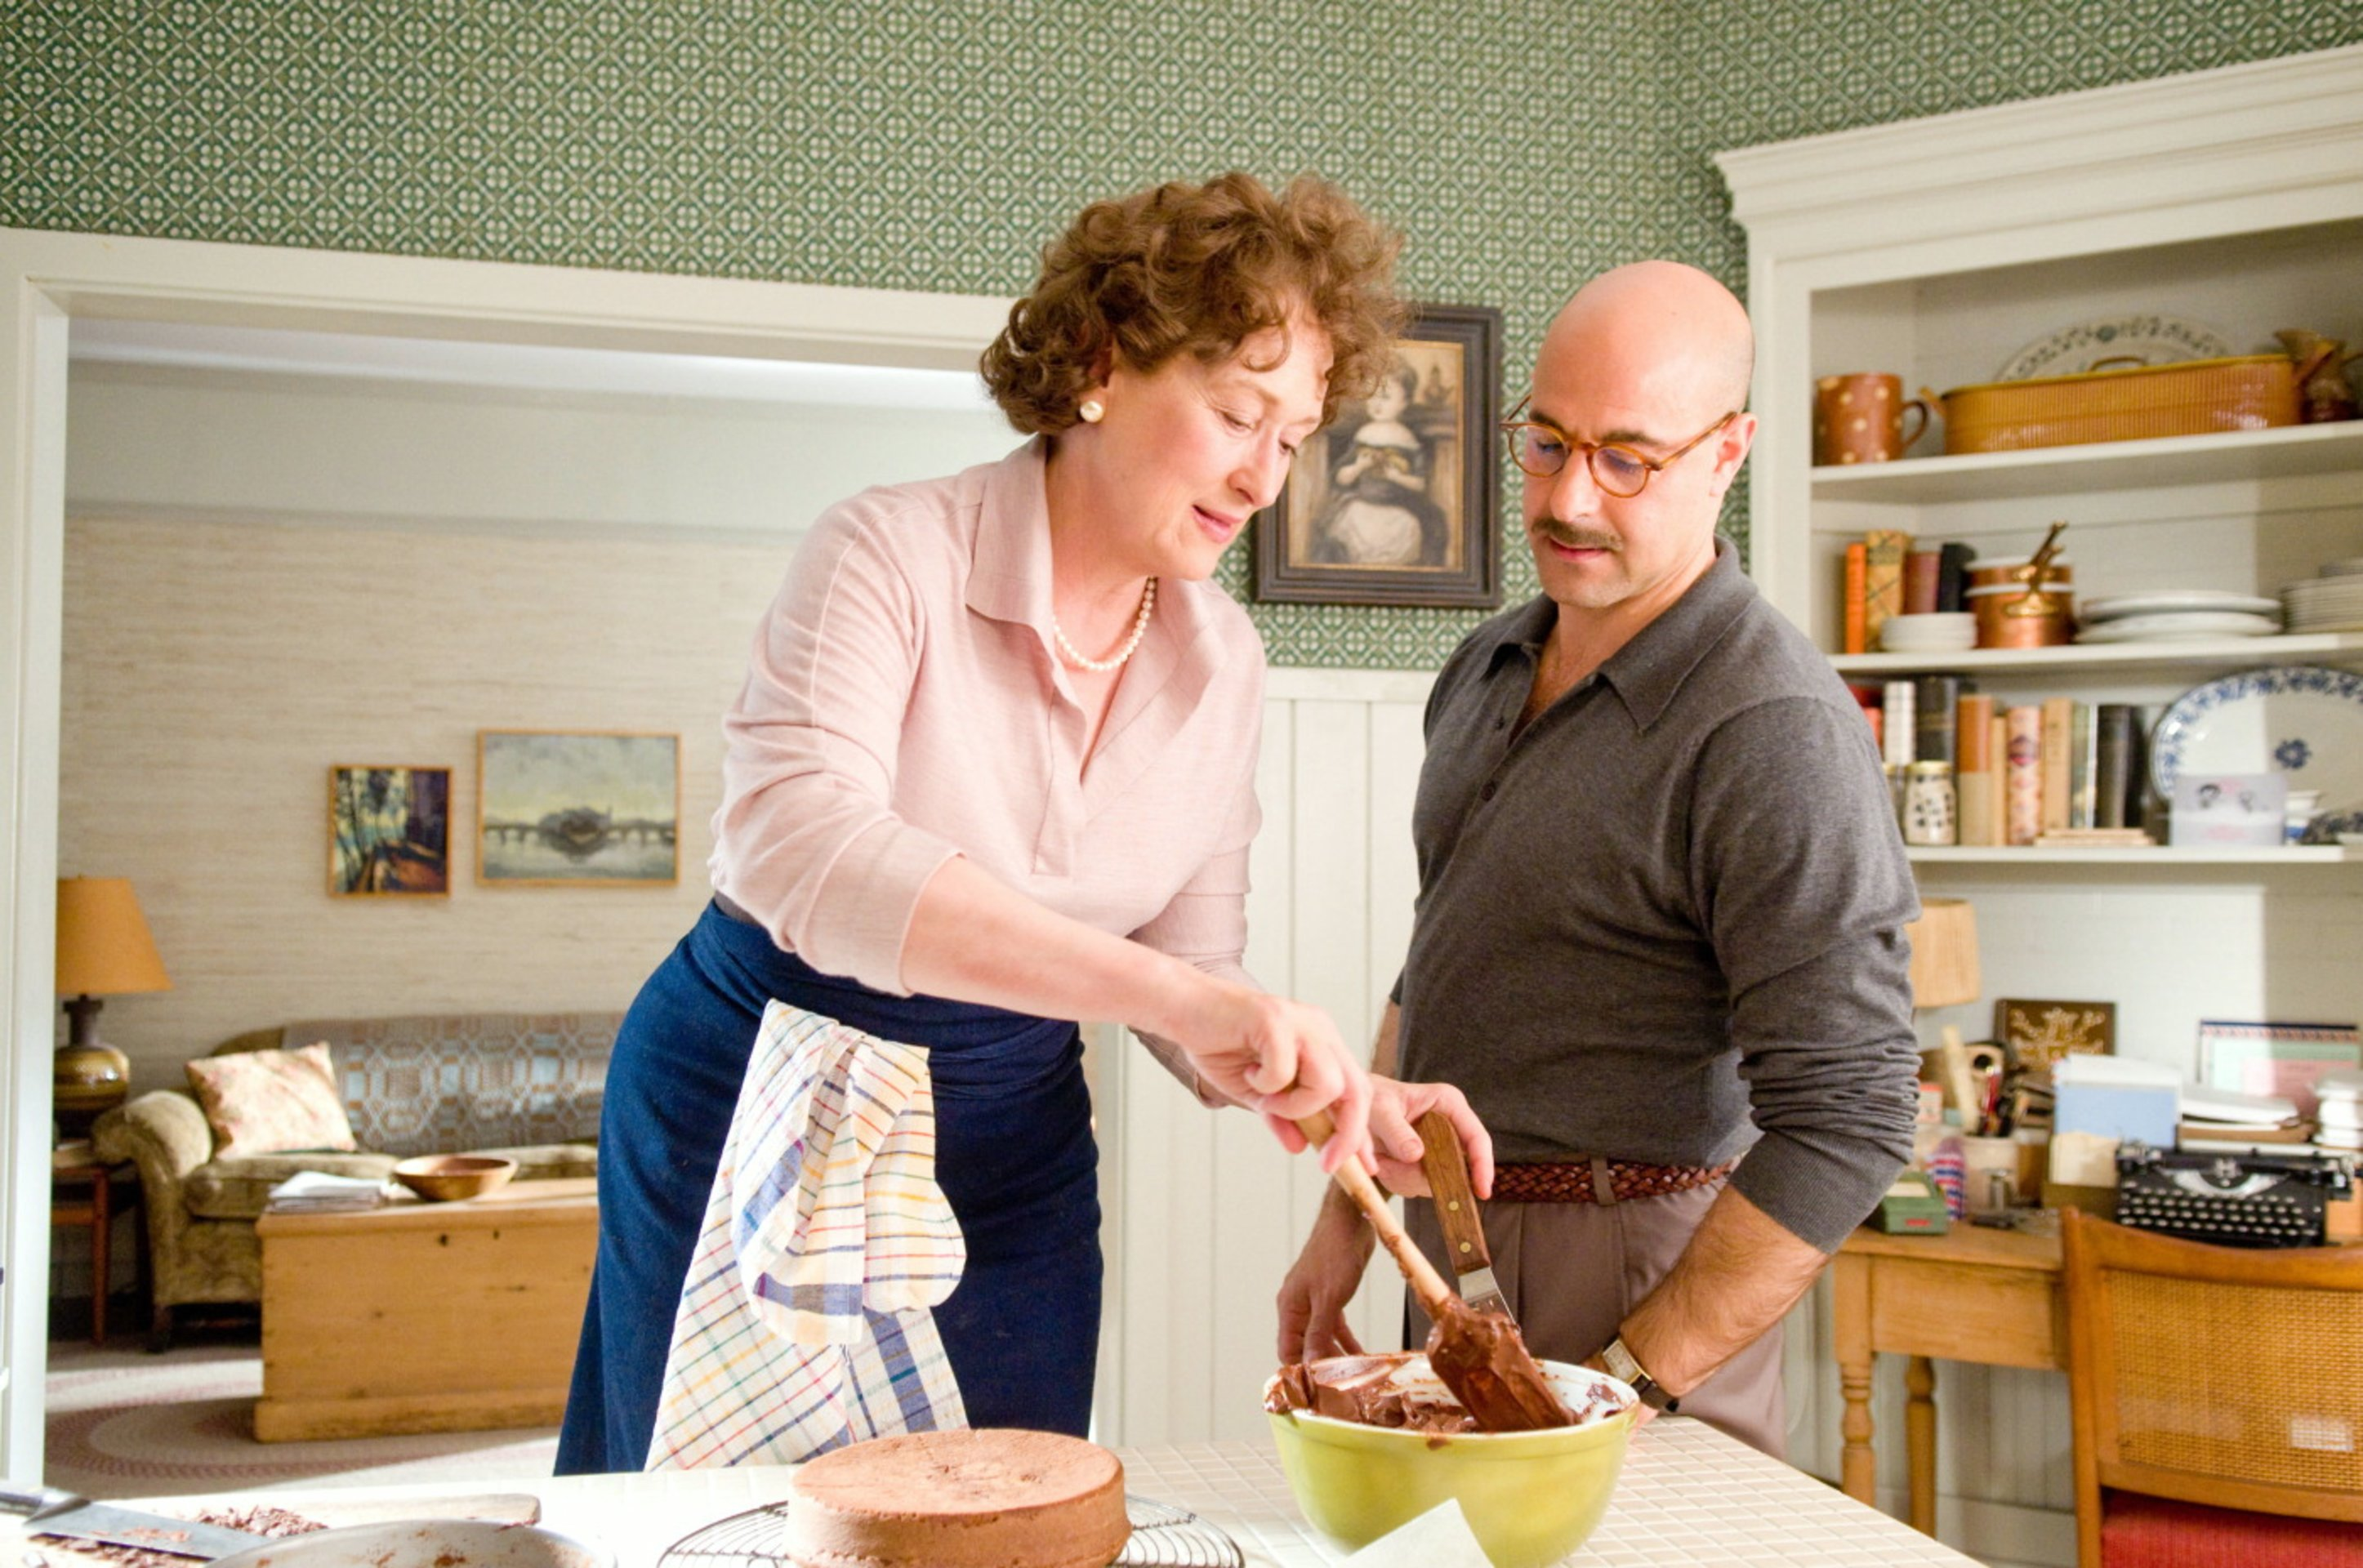 Julia Französische Küche Julie And Julia Film 2009 Trailer Kritik Kino De